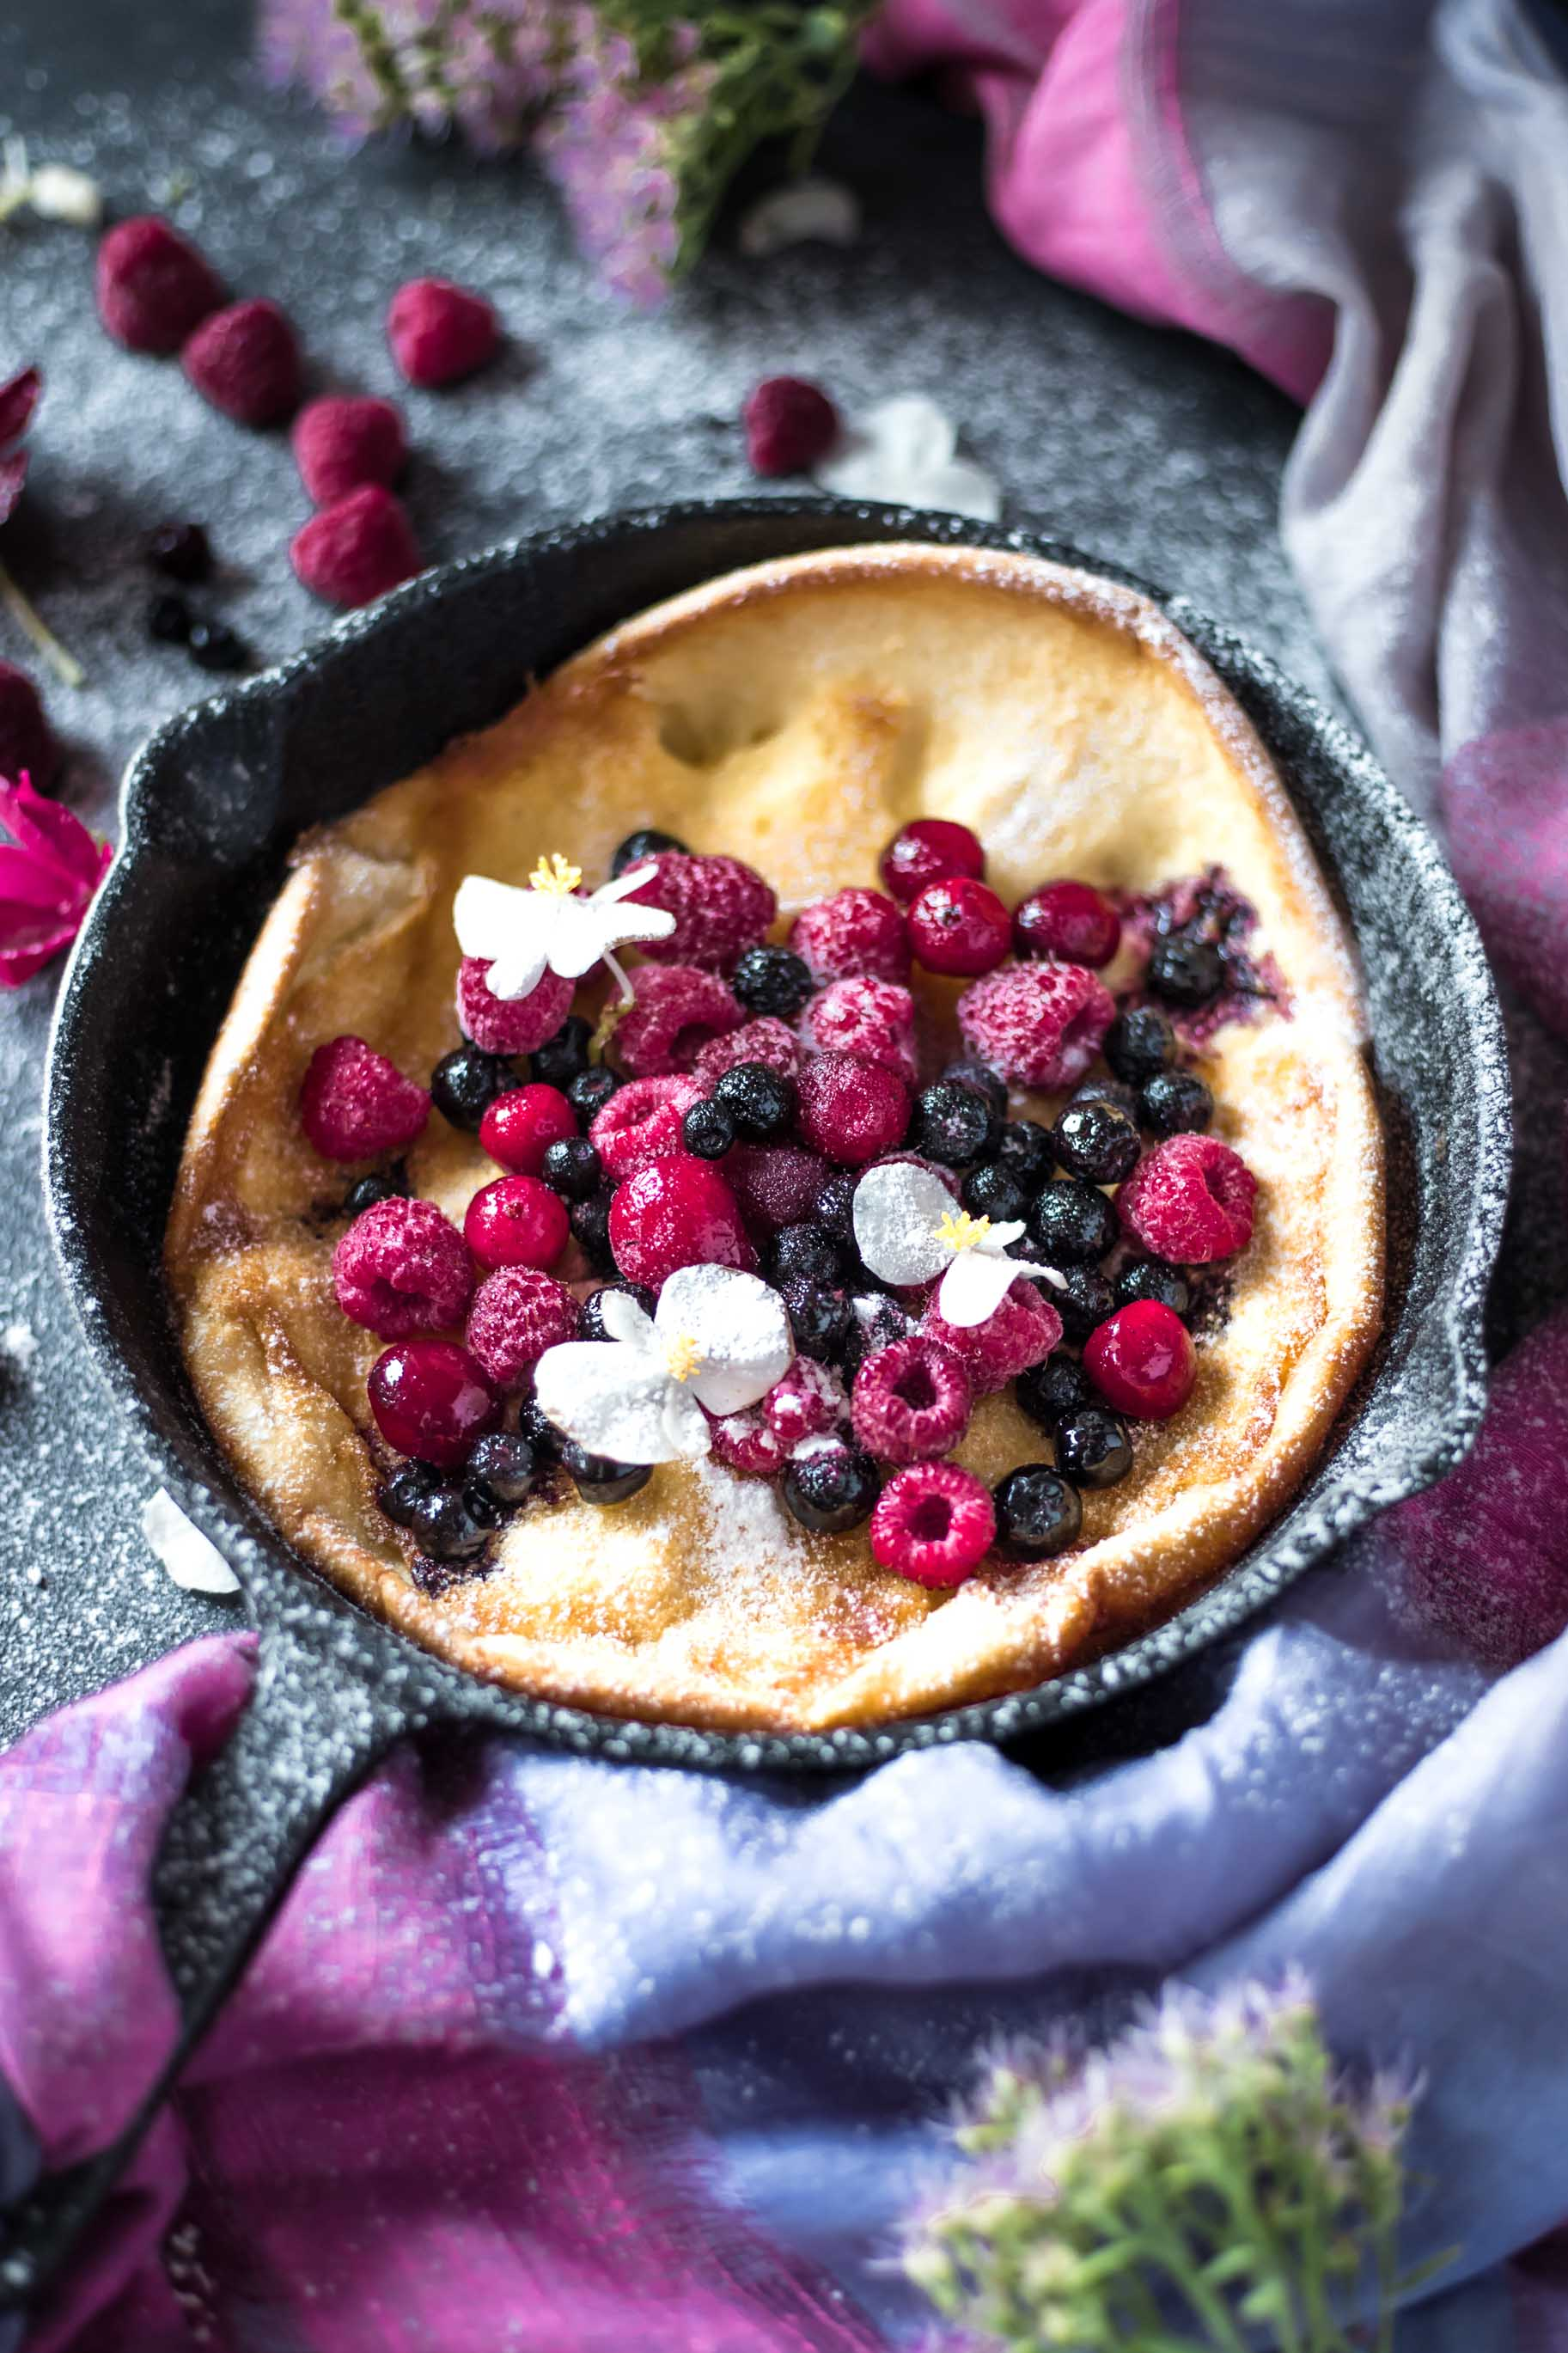 This Gluten-Free Dutch Baby is low FODMAP, light, fluffy, rich and so yum! It makes a filling, satisfying breakfast or brunch.